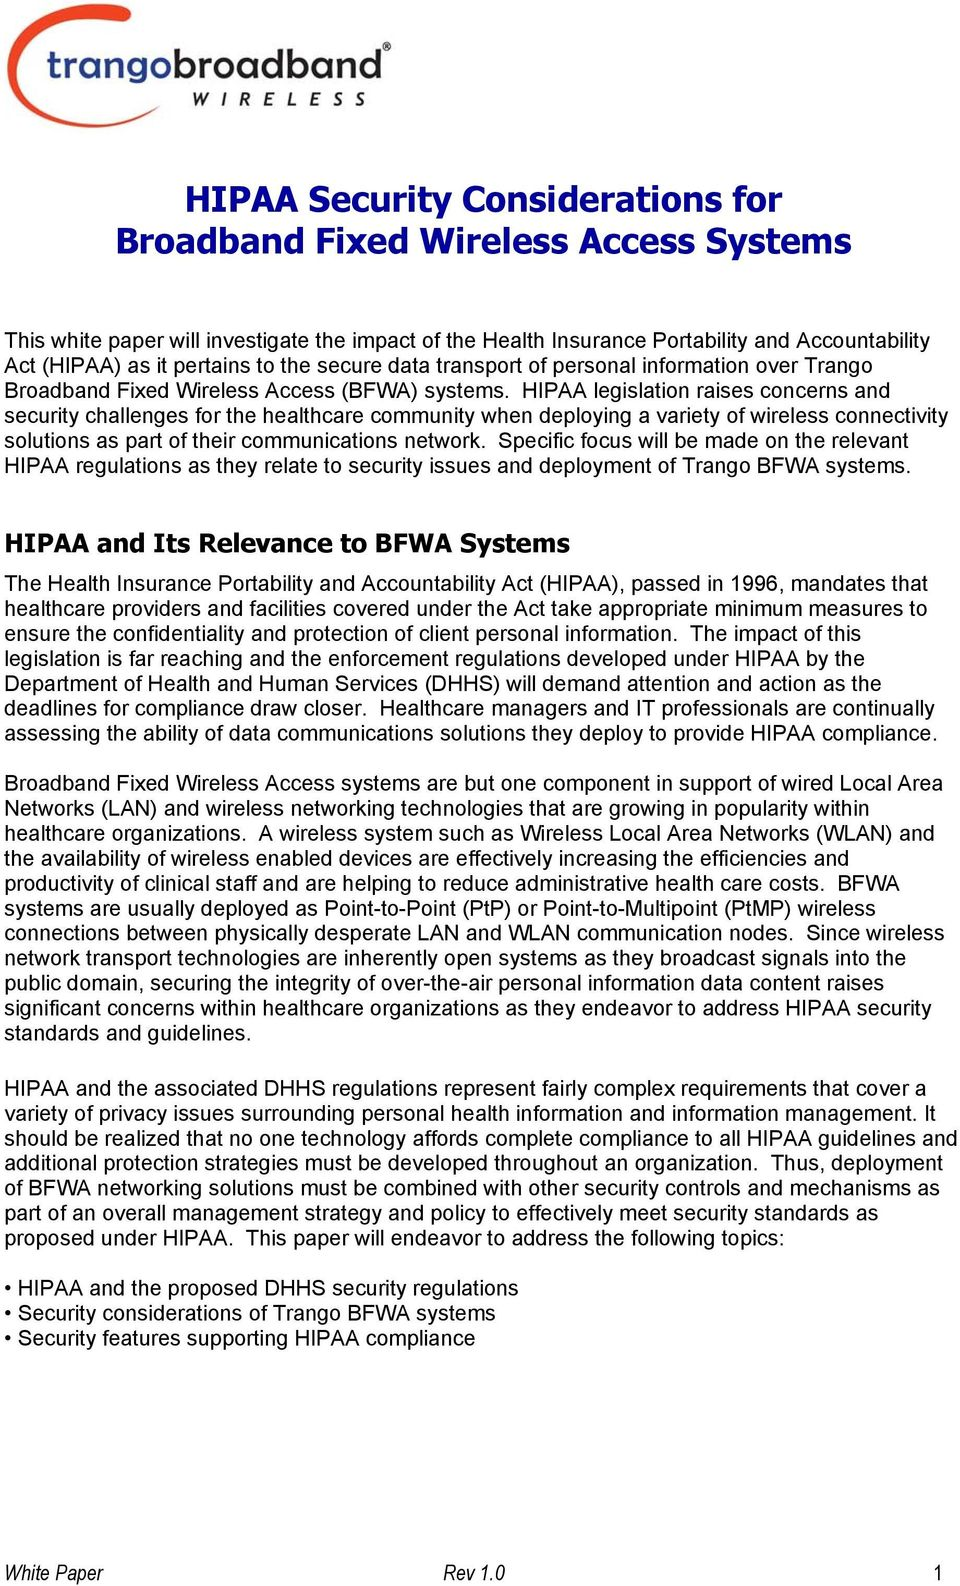 HIPAA legislation raises concerns and security challenges for the healthcare community when deploying a variety of wireless connectivity solutions as part of their communications network.